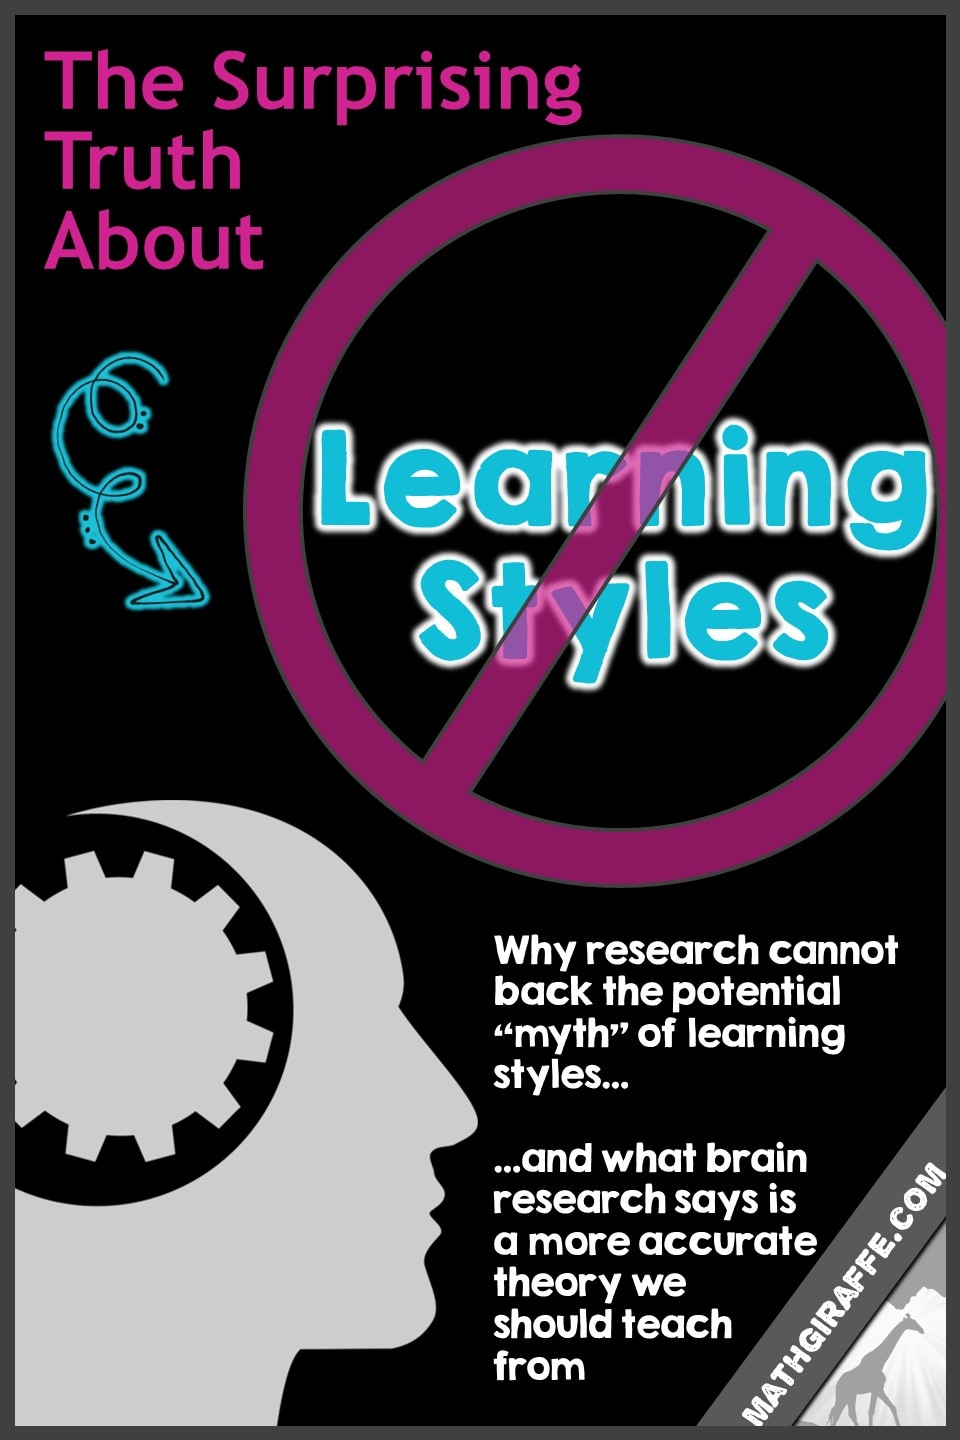 The Myth Of Learning Styles >> The Surprising Truth About Learning Styles